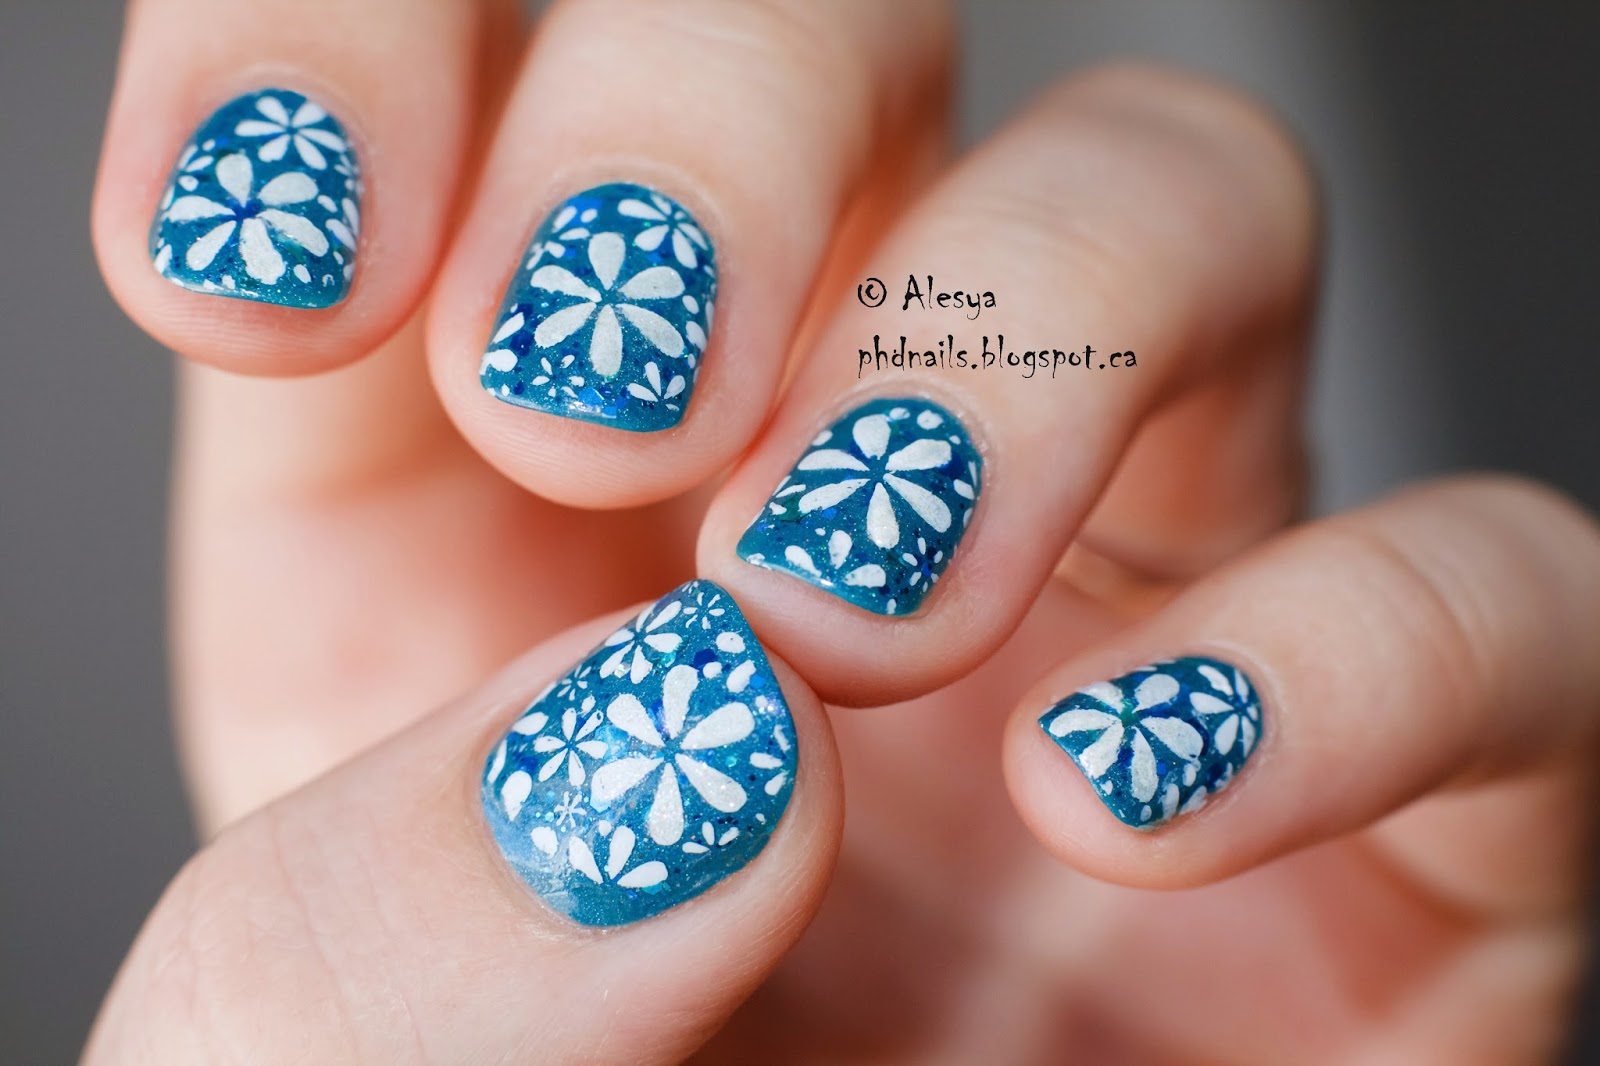 PhD nails: Spring flowers nail art with LaLa land by